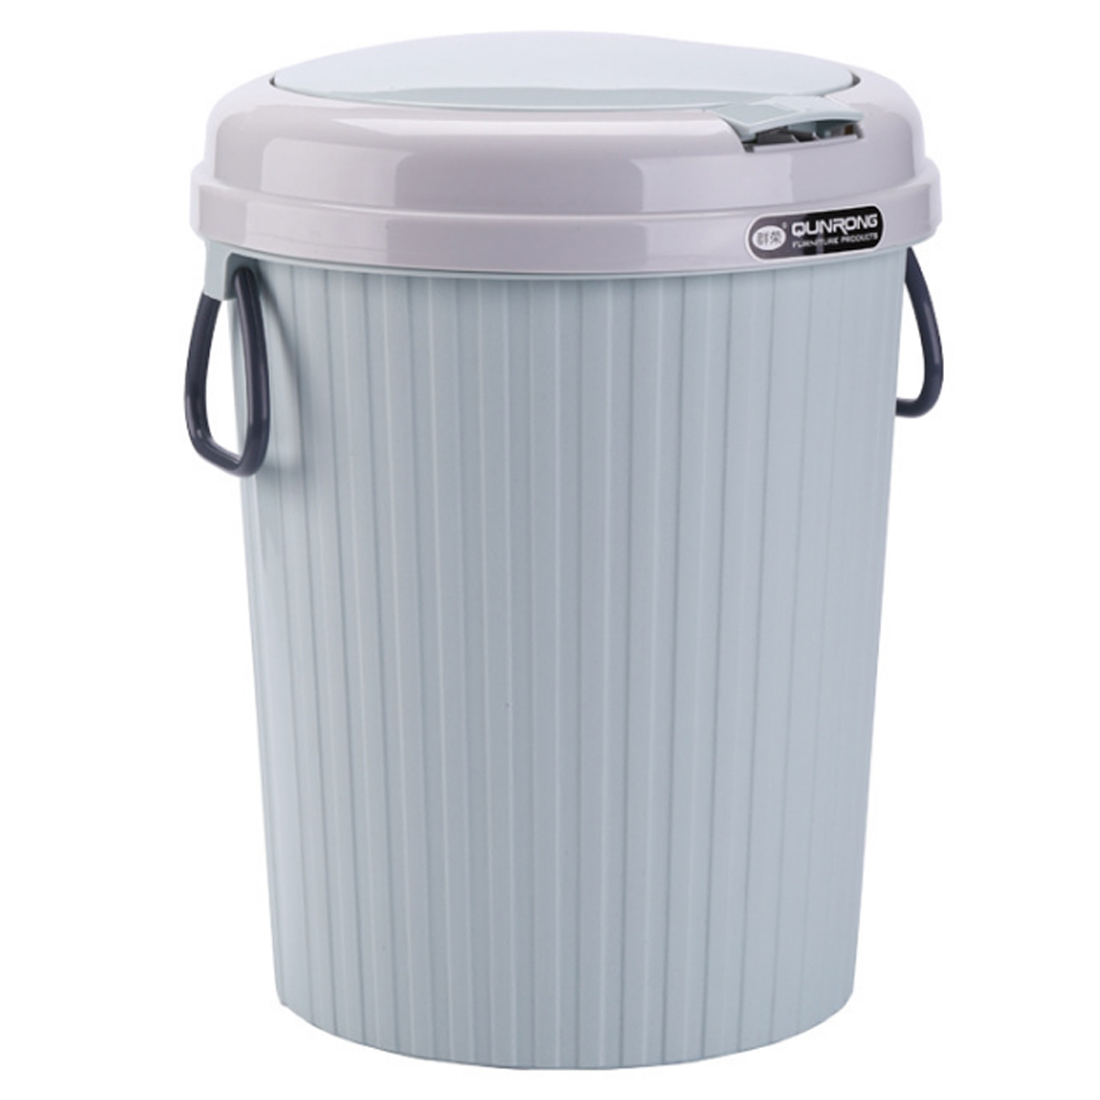 Buy kitchen garbage bin and get free shipping on AliExpress.com